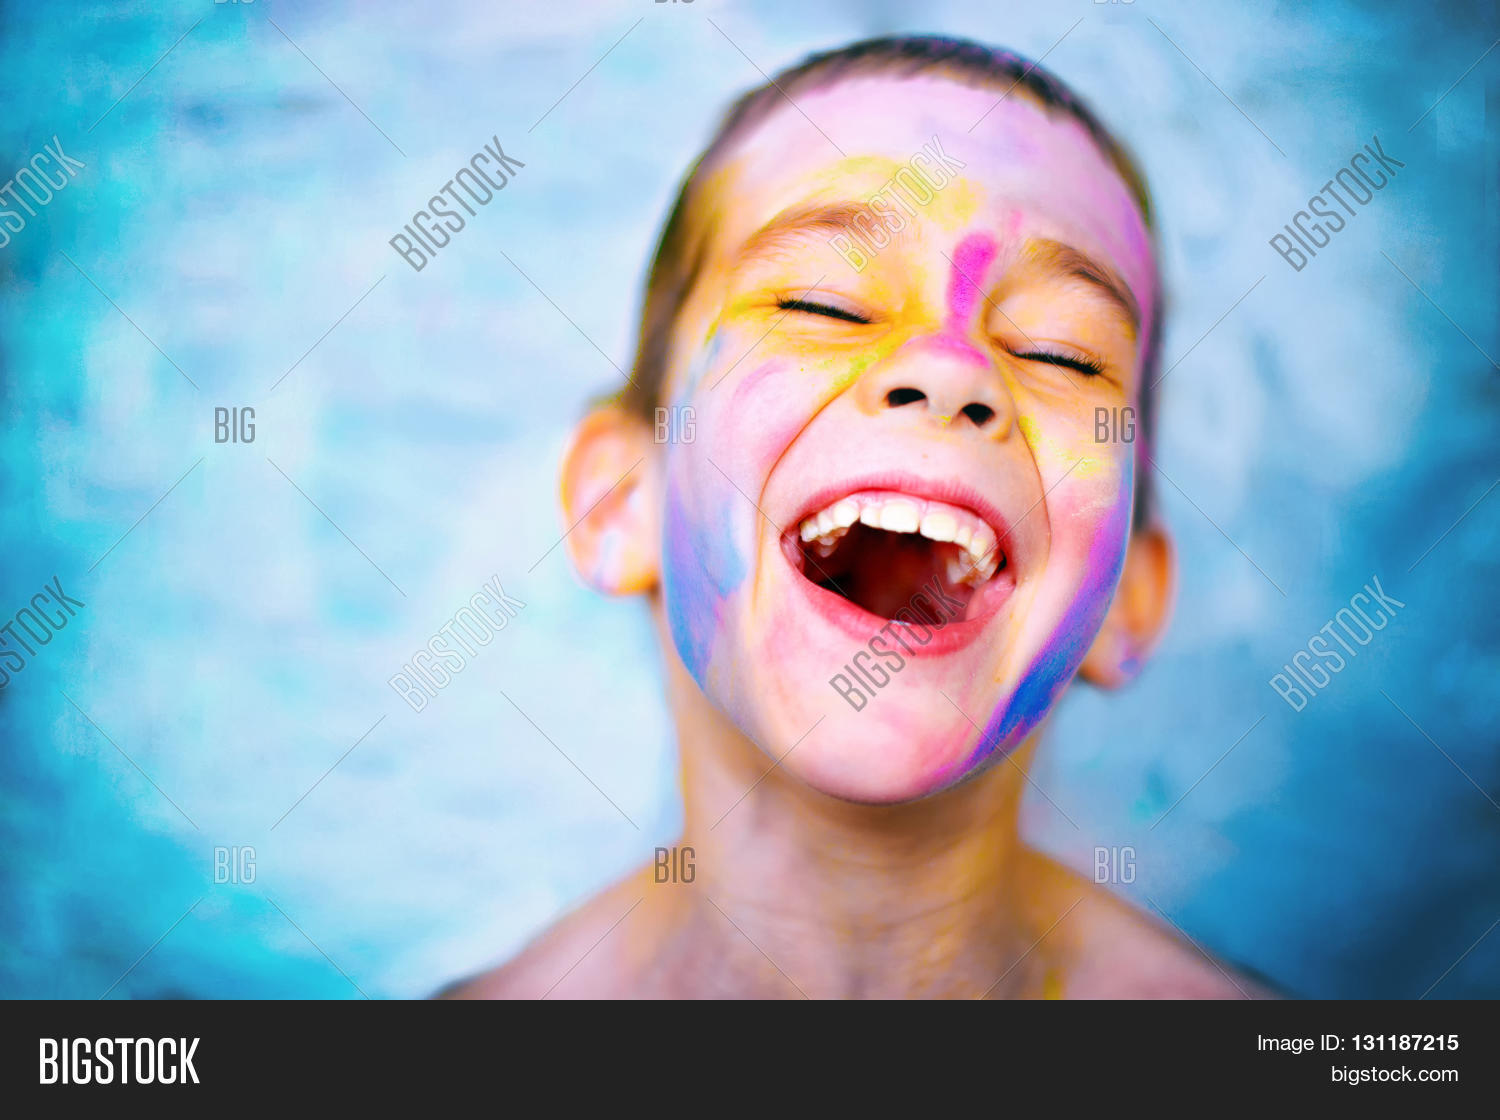 7f38784bc Laughing Kid Paint Image & Photo (Free Trial) | Bigstock